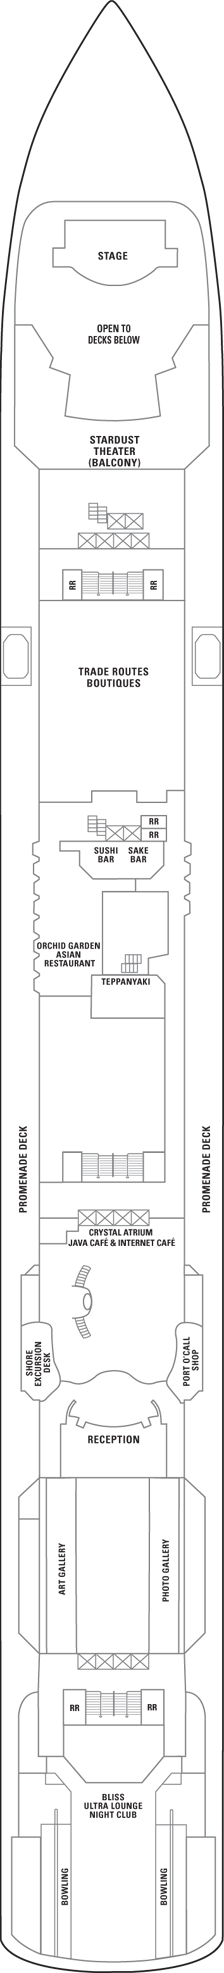 Norwegian Gem Deck 7 layout